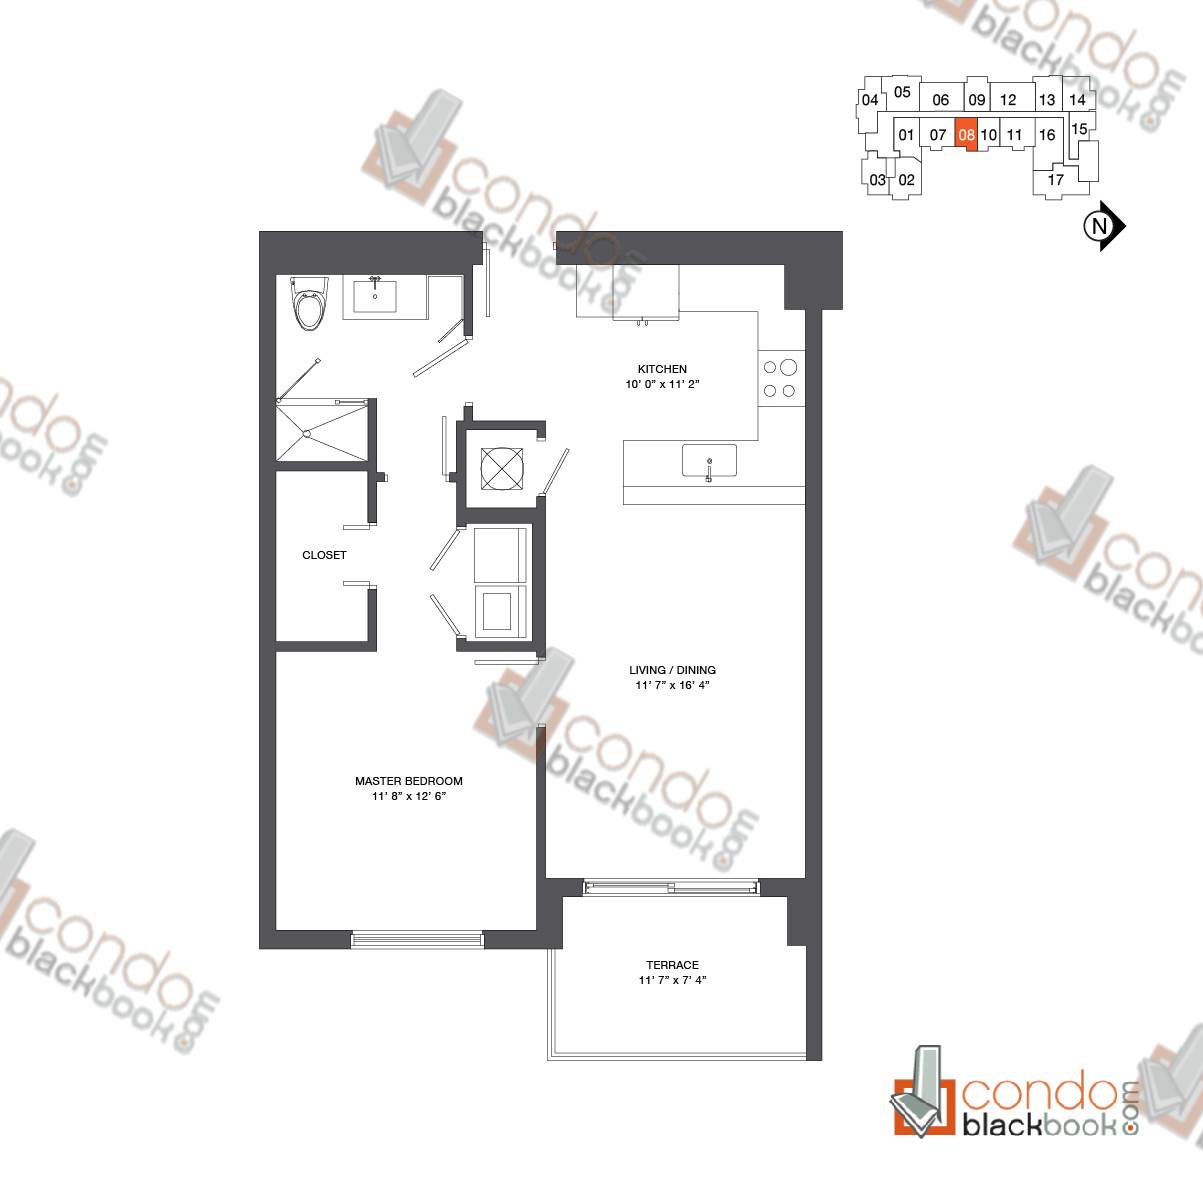 Floor plan for Nine at Mary Brickell Village Brickell Miami, model Residence 12-33_08, line 08, 1/1 bedrooms, 744 sq ft